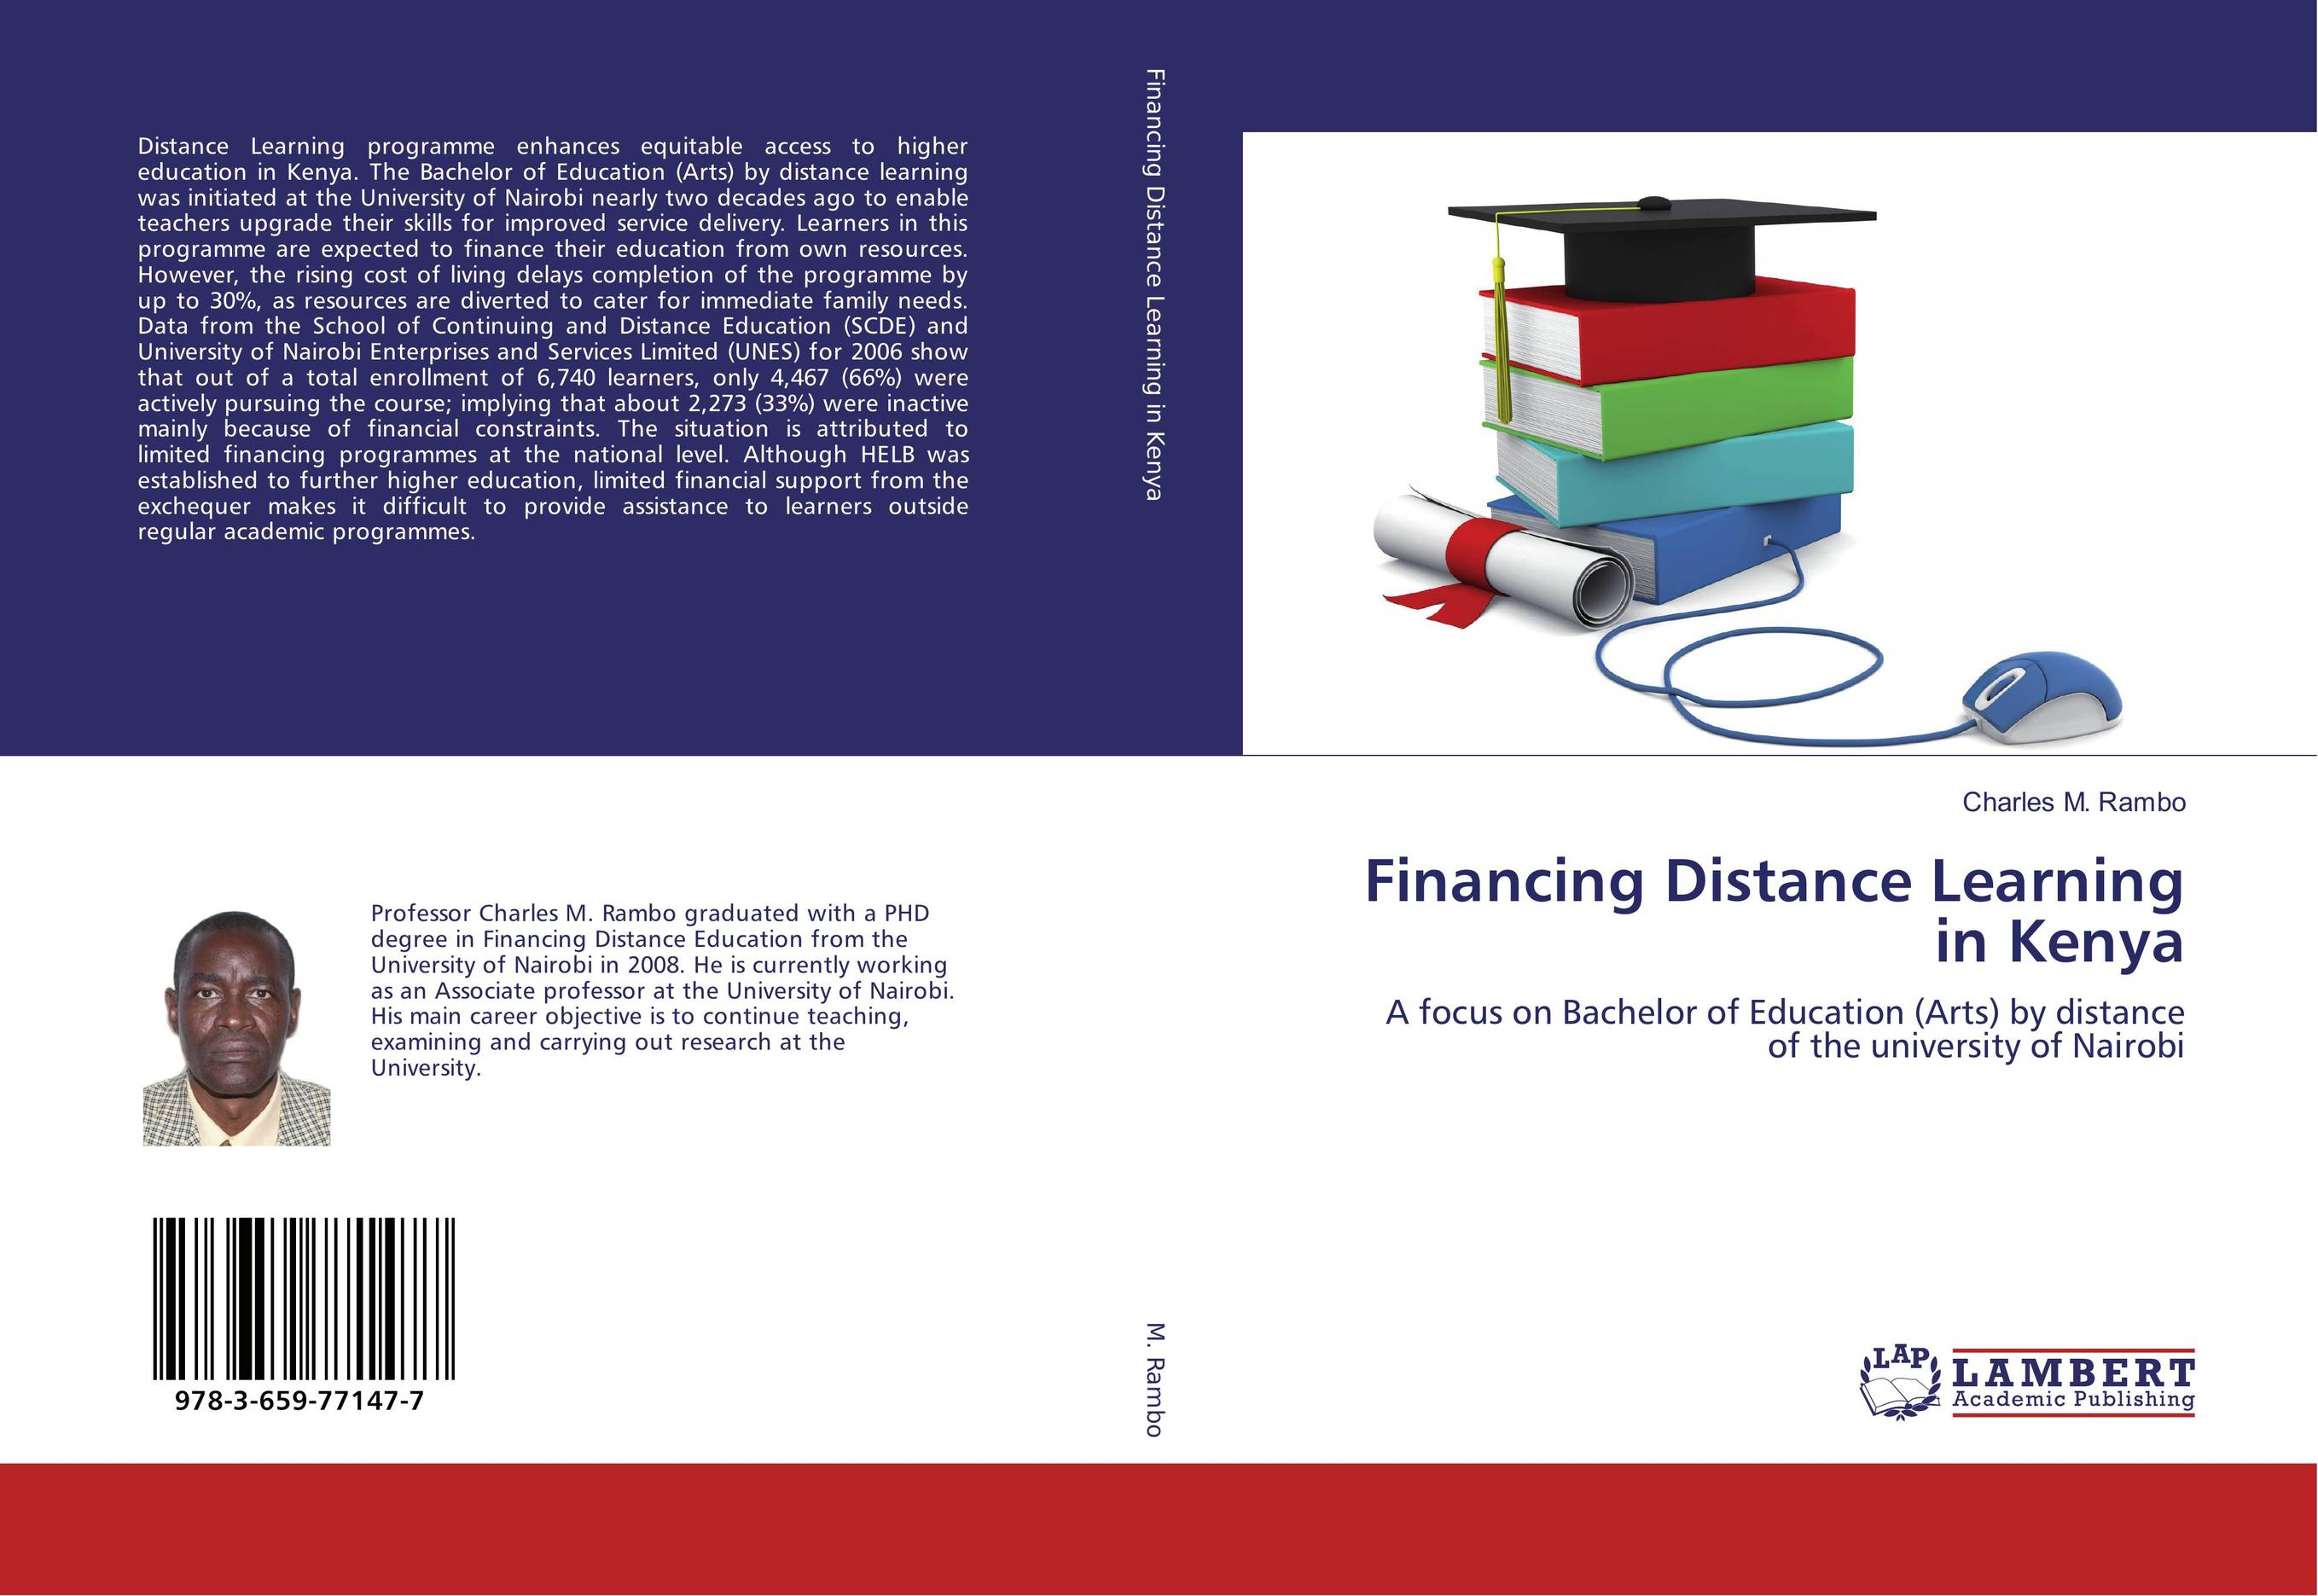 essay distance learning education 4 advantages of distance learning by don georgevich on 3:21 pm distance learning is a way of continuing your education online, and more there are many advantages of distance learning and also benefits of distance learning when compared to the traditional continued education options.